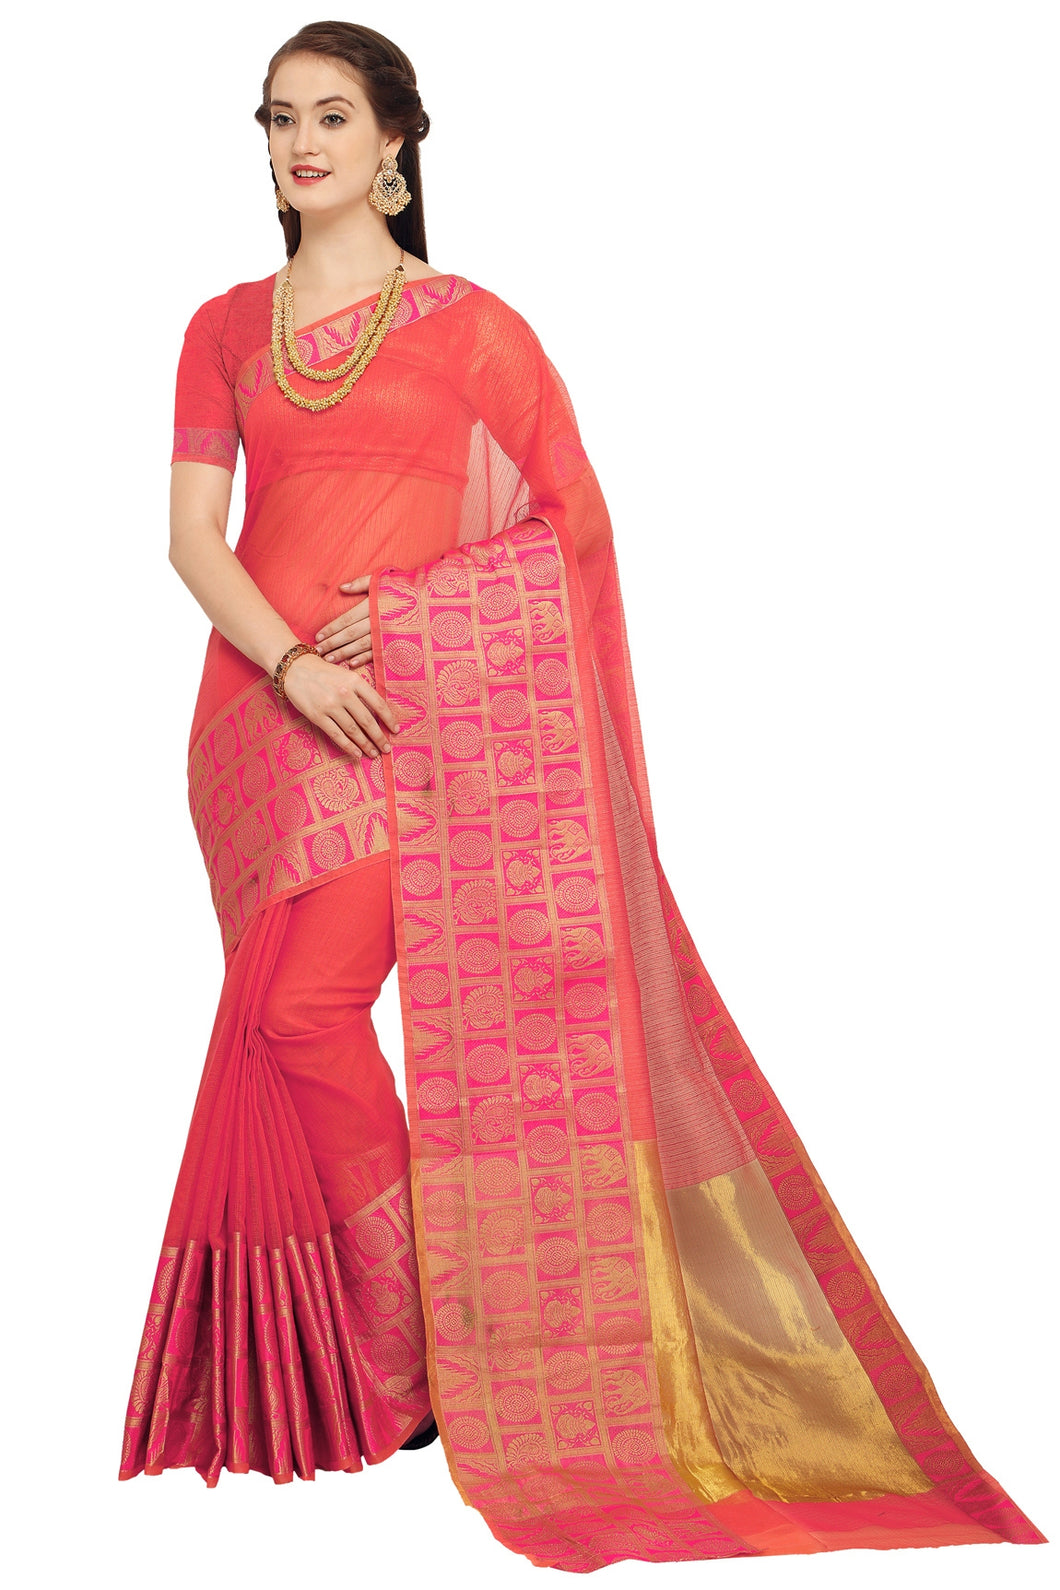 Bhelpuri Orange Raw Silk Woven Saree with Blouse Piece